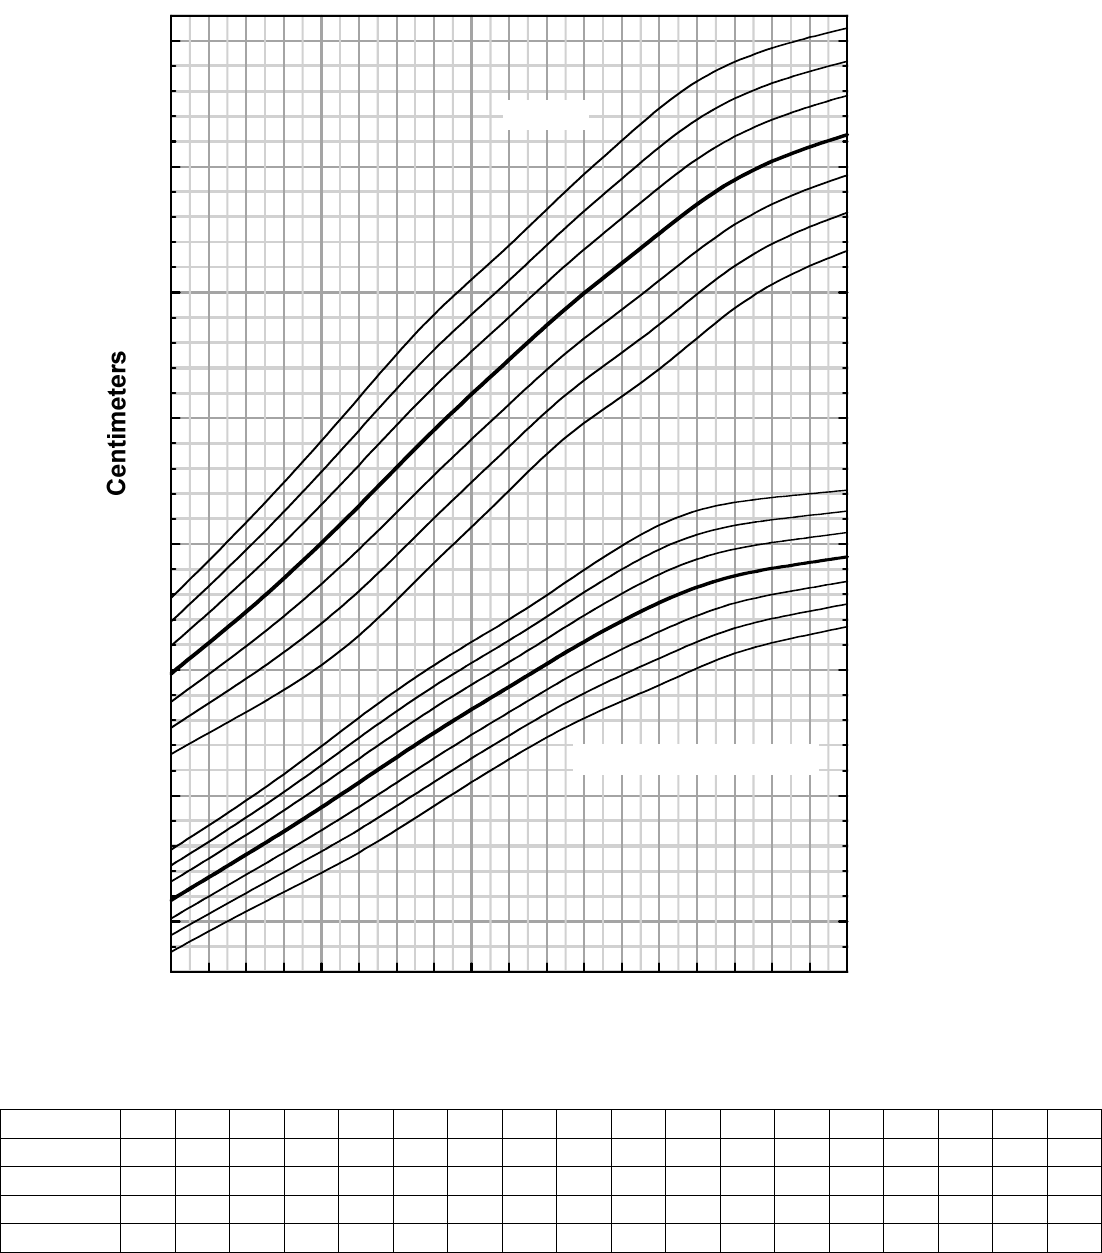 fetal growth chart percentile - photo #32